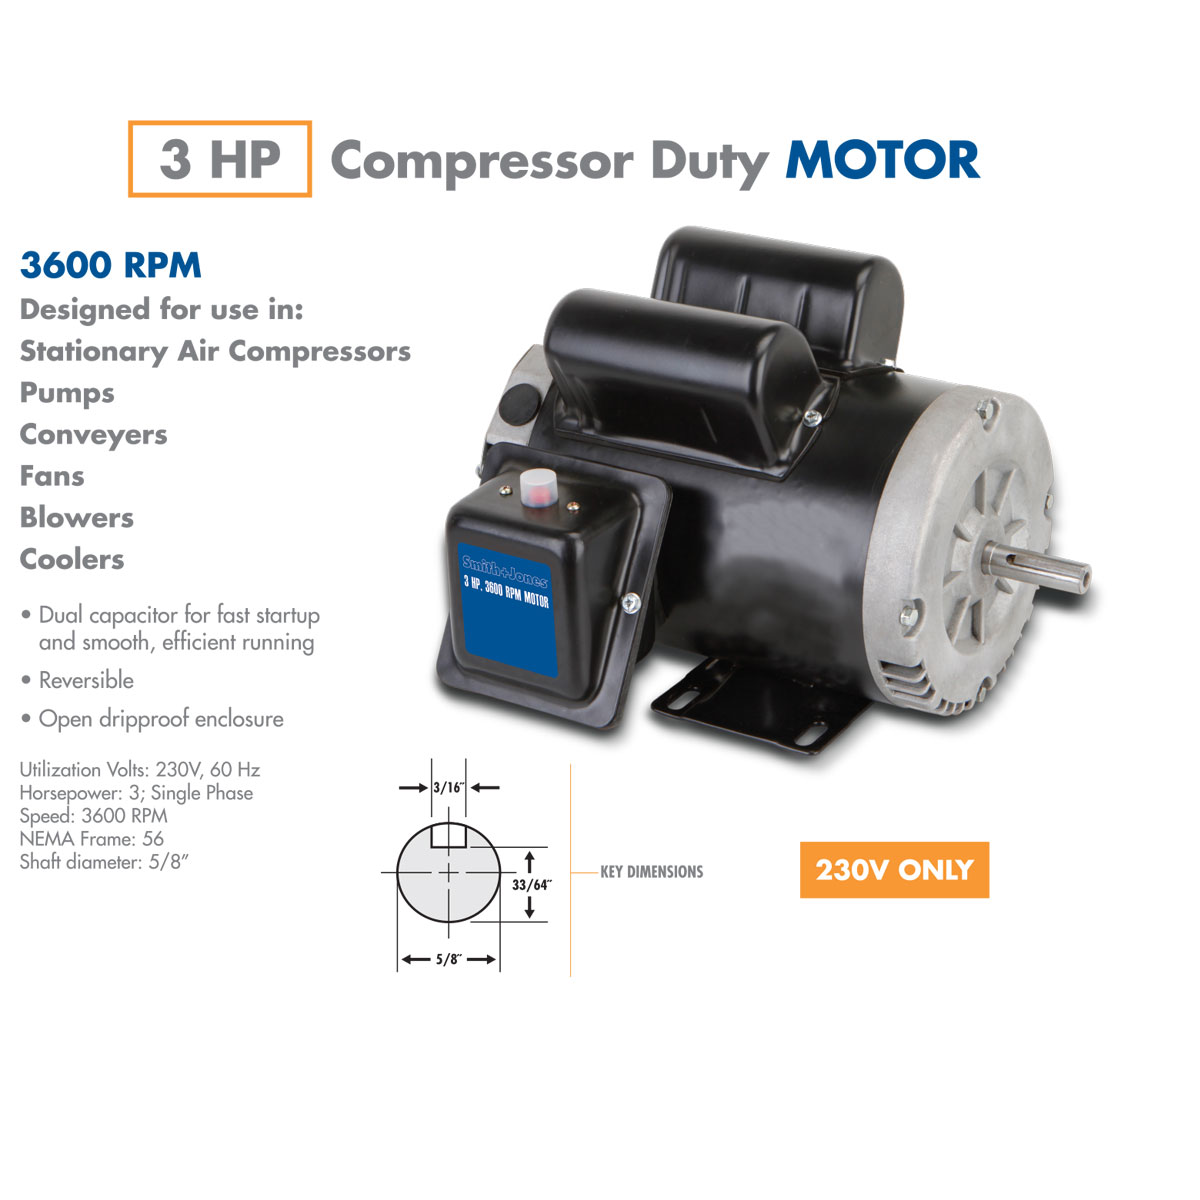 3 Hp Compressor Duty Motor Go Kart 5 Diagram Find A Guide With Wiring 68302 Zzz Alt2 500